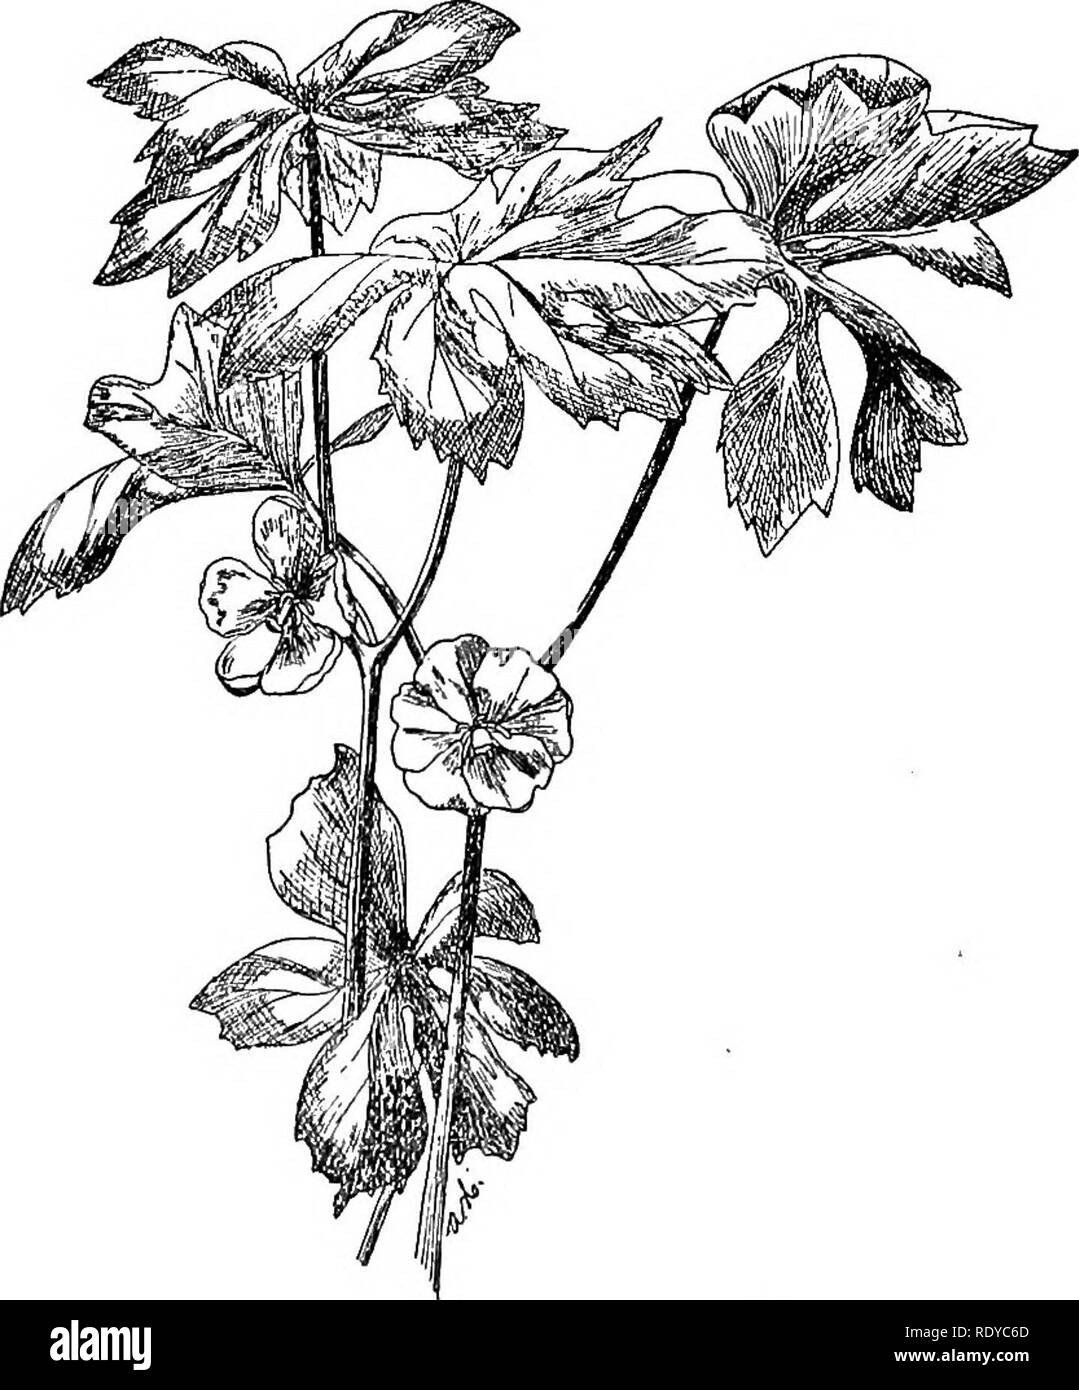 . A manual of poisonous plants, chiefly of eastern North America, with brief notes on economic and medicinal plants, and numerous illustrations. Poisonous plants. 470 MANUAIv OF POISONOUS PLANTS as the petals; pistil 1; stigma large, flat, sessile; fruit a large fleshy berry, 1-celled and many-seeded, each seed enclosed in a pulpy aril. 4 species, one in eastern North America and the others iu India and Eastern Asia. The P. emodi of Asia contains the same principles as the American species and is poisonous. Podophyllum peltatum L. Mandrake Perennial herb, with creeping rootstocks and thick fib - Stock Image